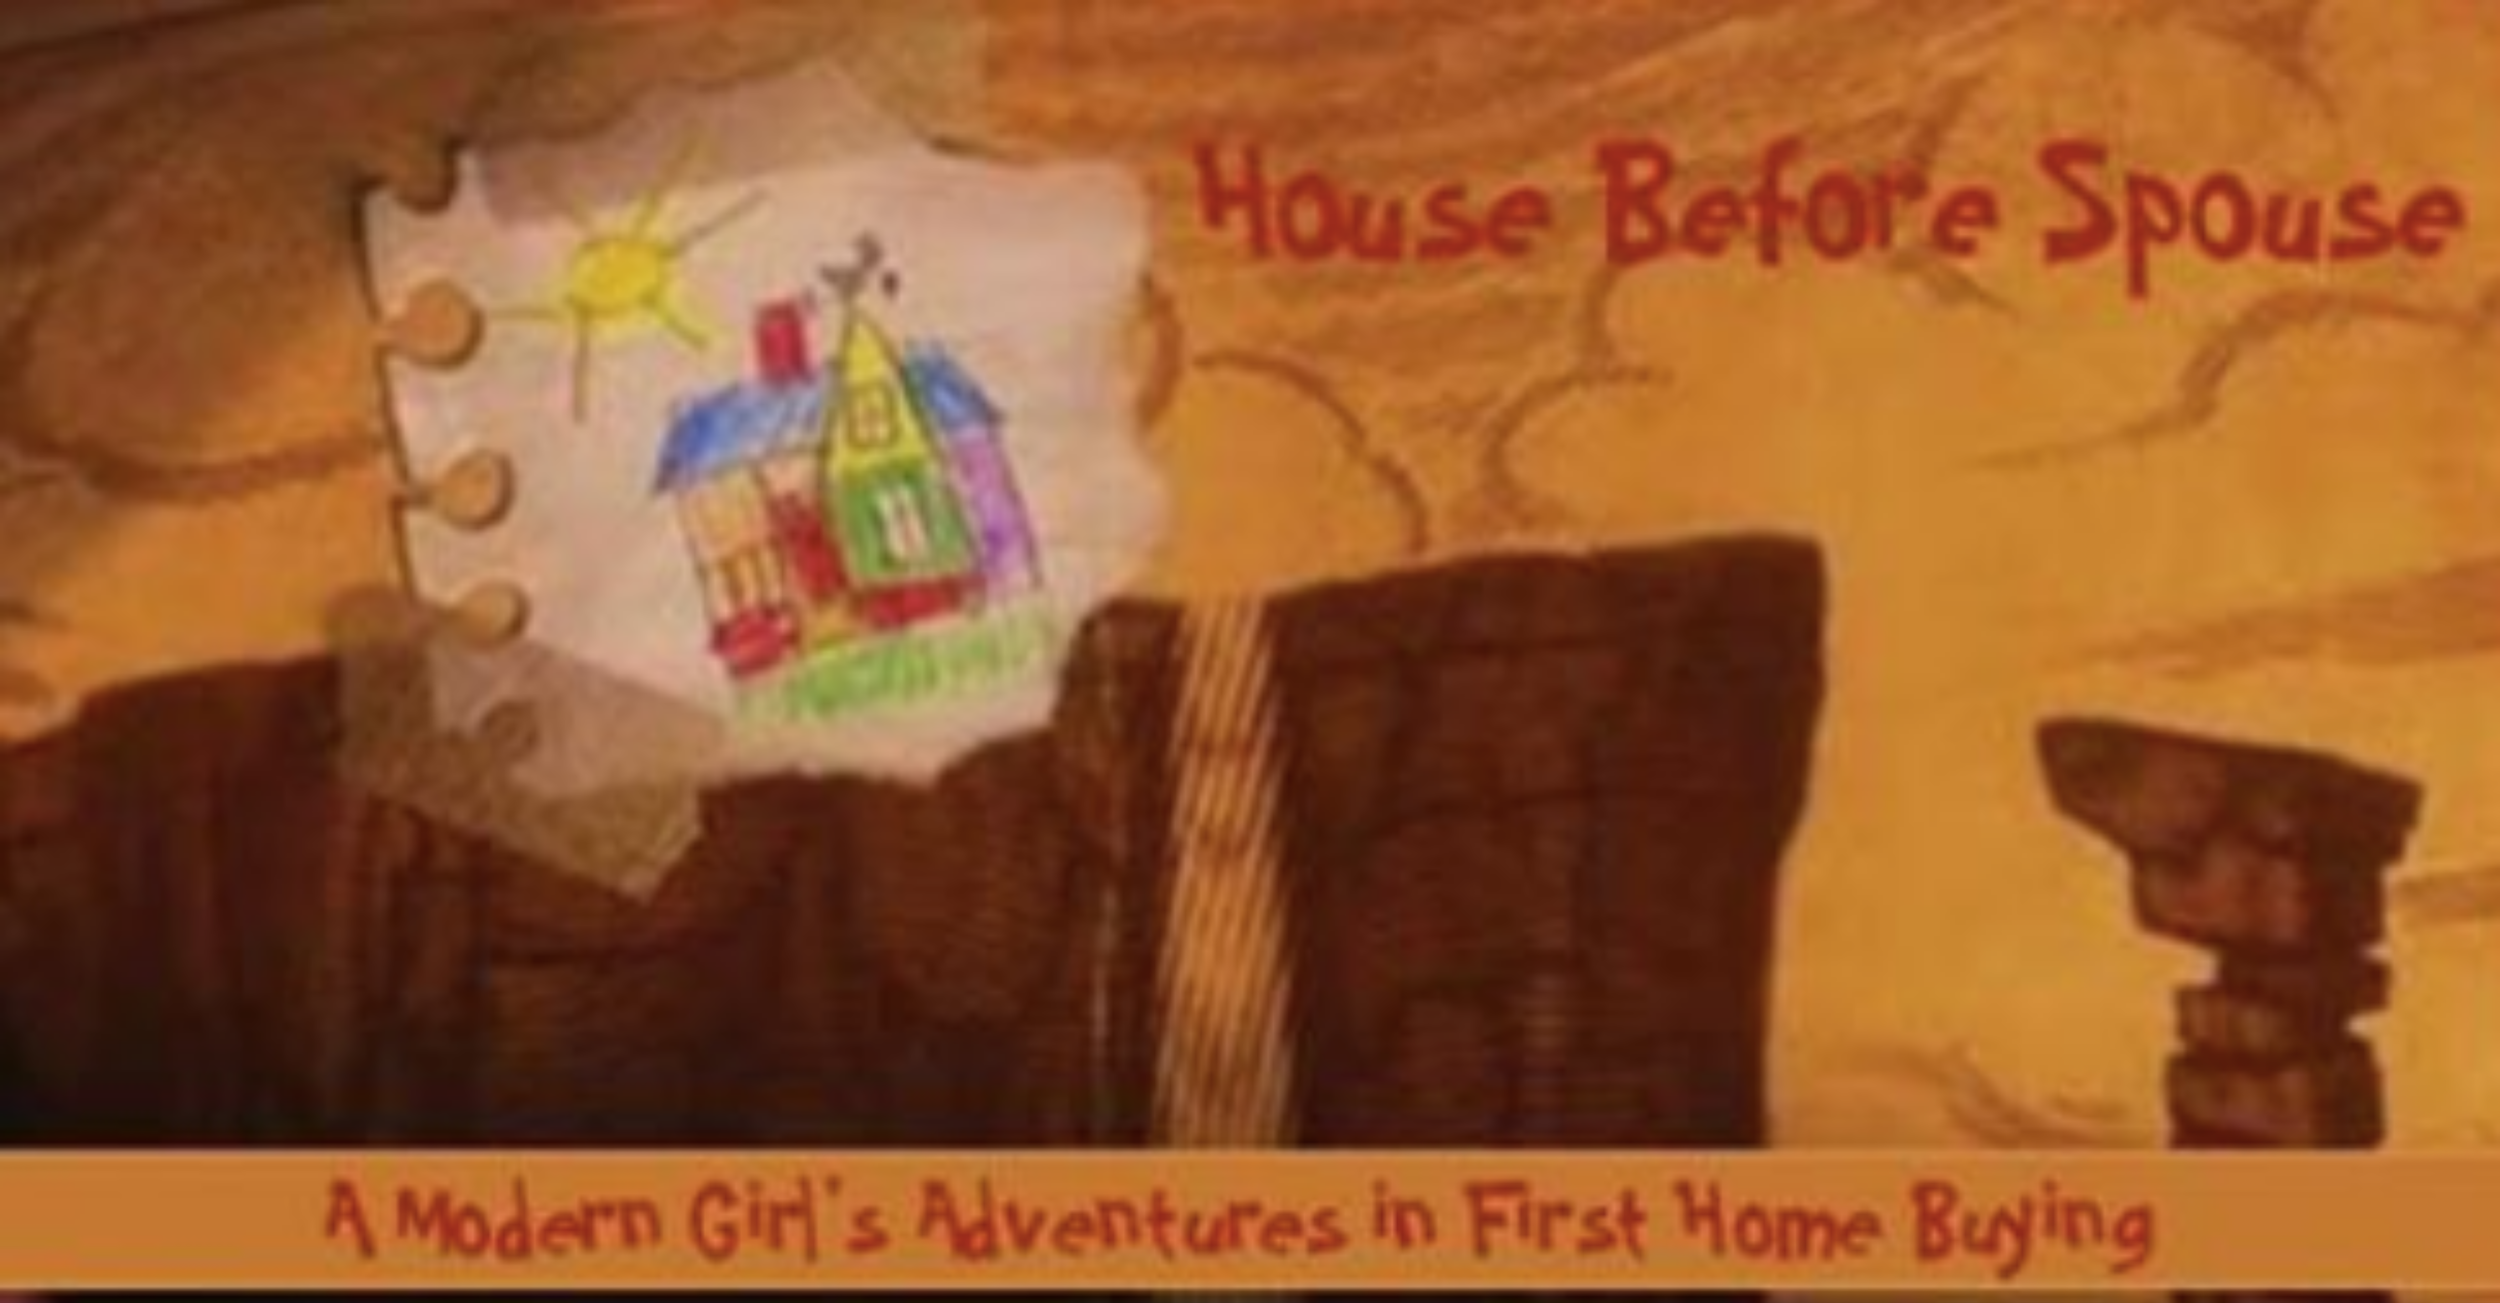 The title graphic from when I first started this blog and it was called House Before Spouse.